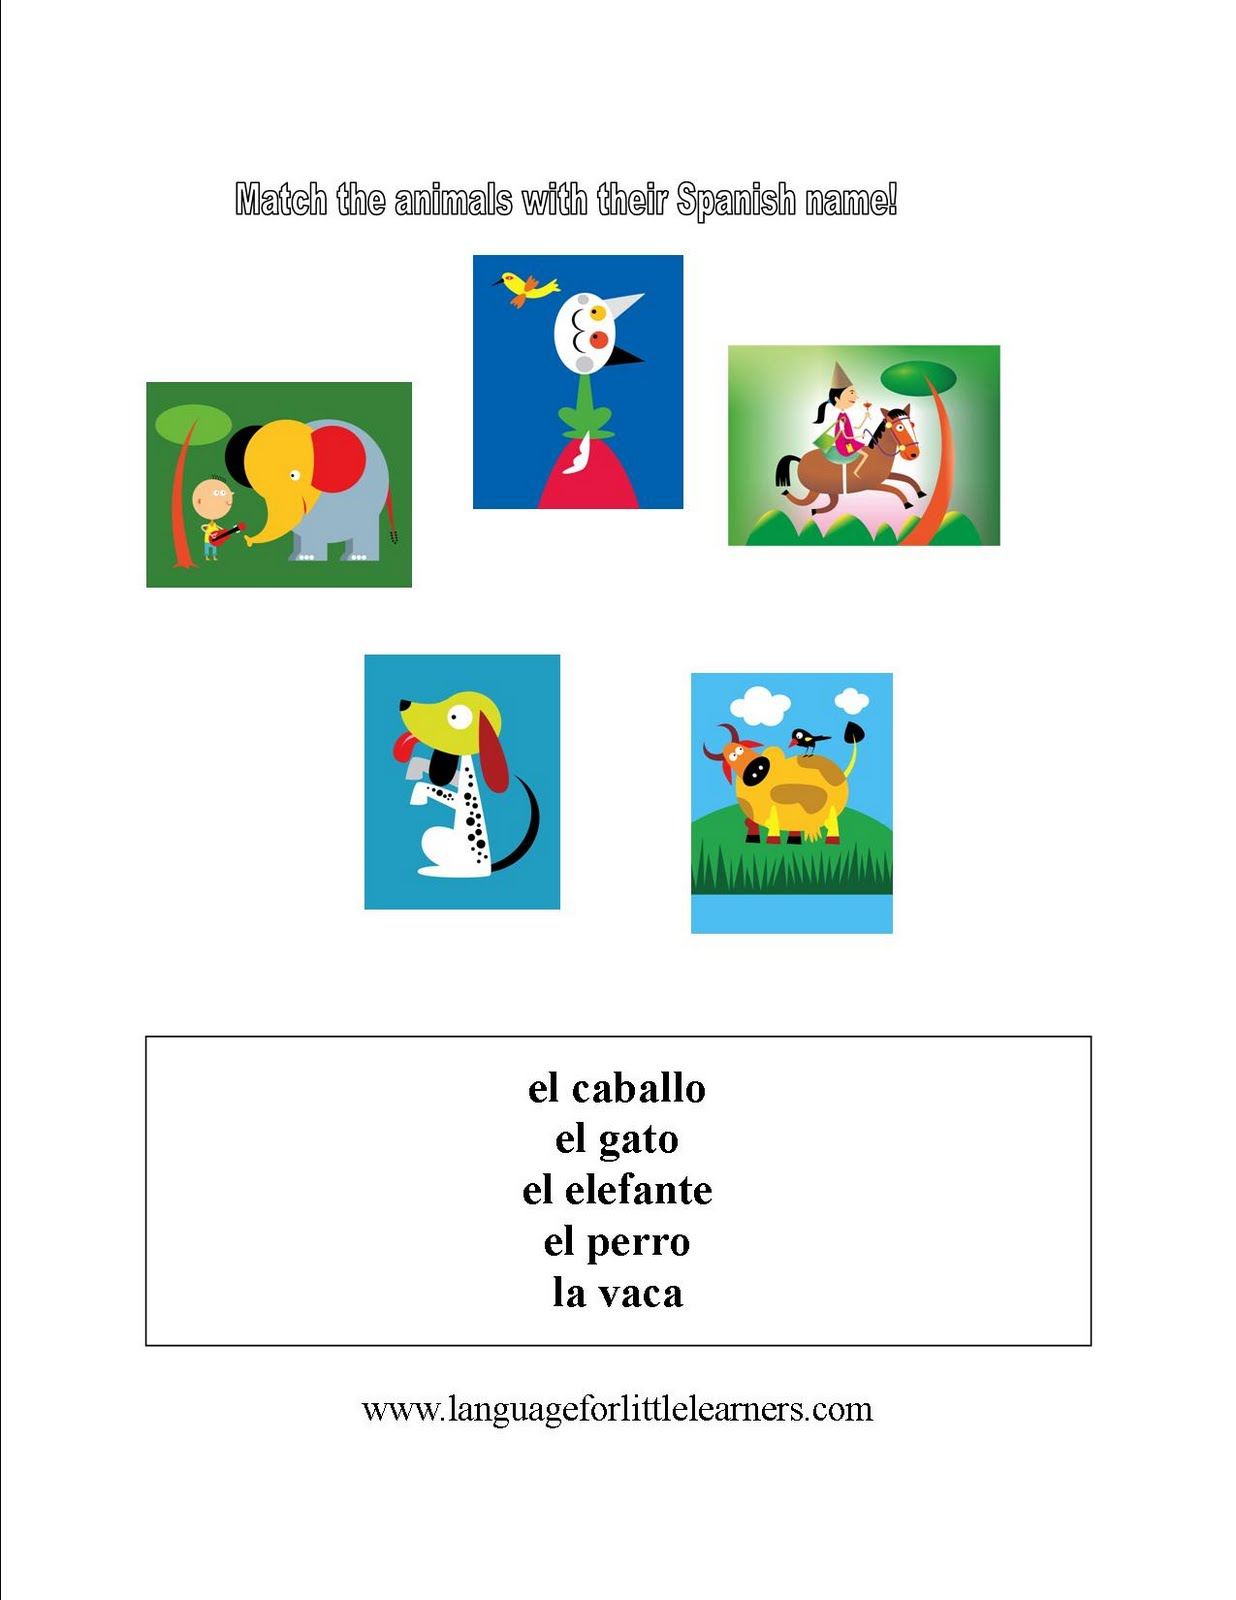 Spanish For Little Learners Worksheet For Learning Animal